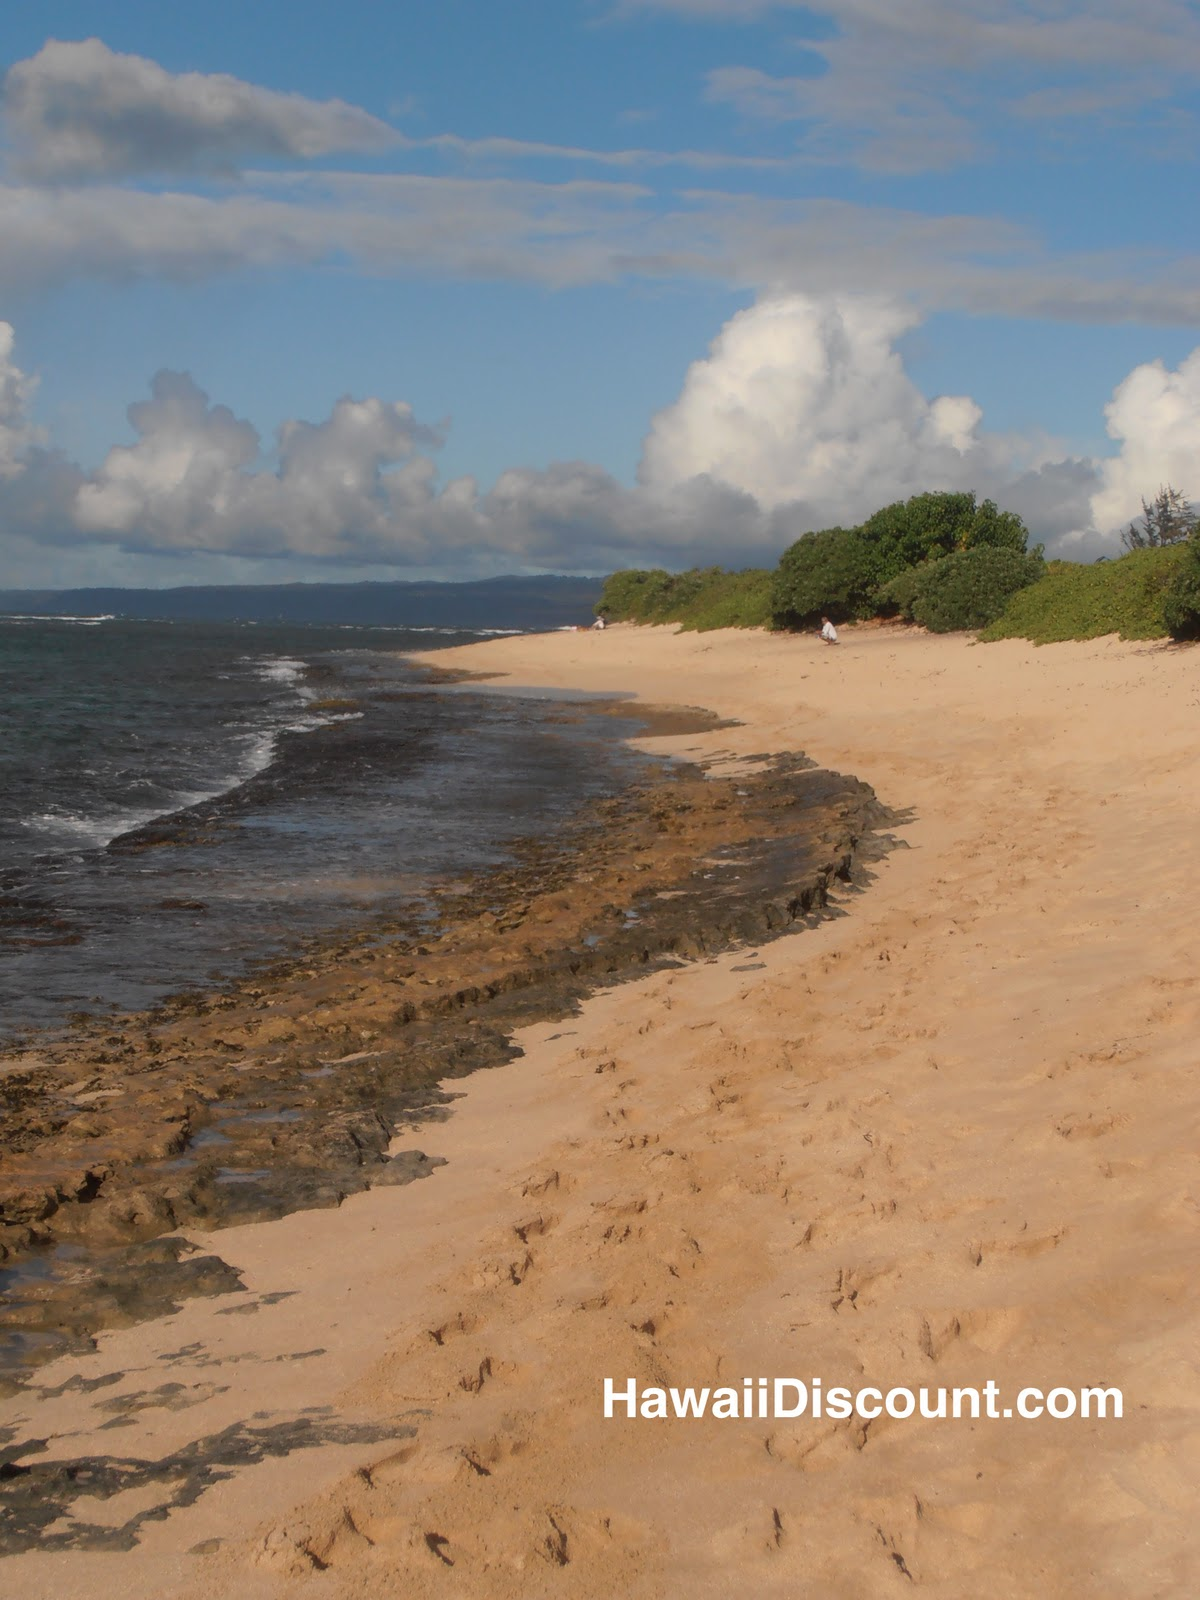 North Shore Of Oahu Hawaii Tours Traveling Trio Hawaii